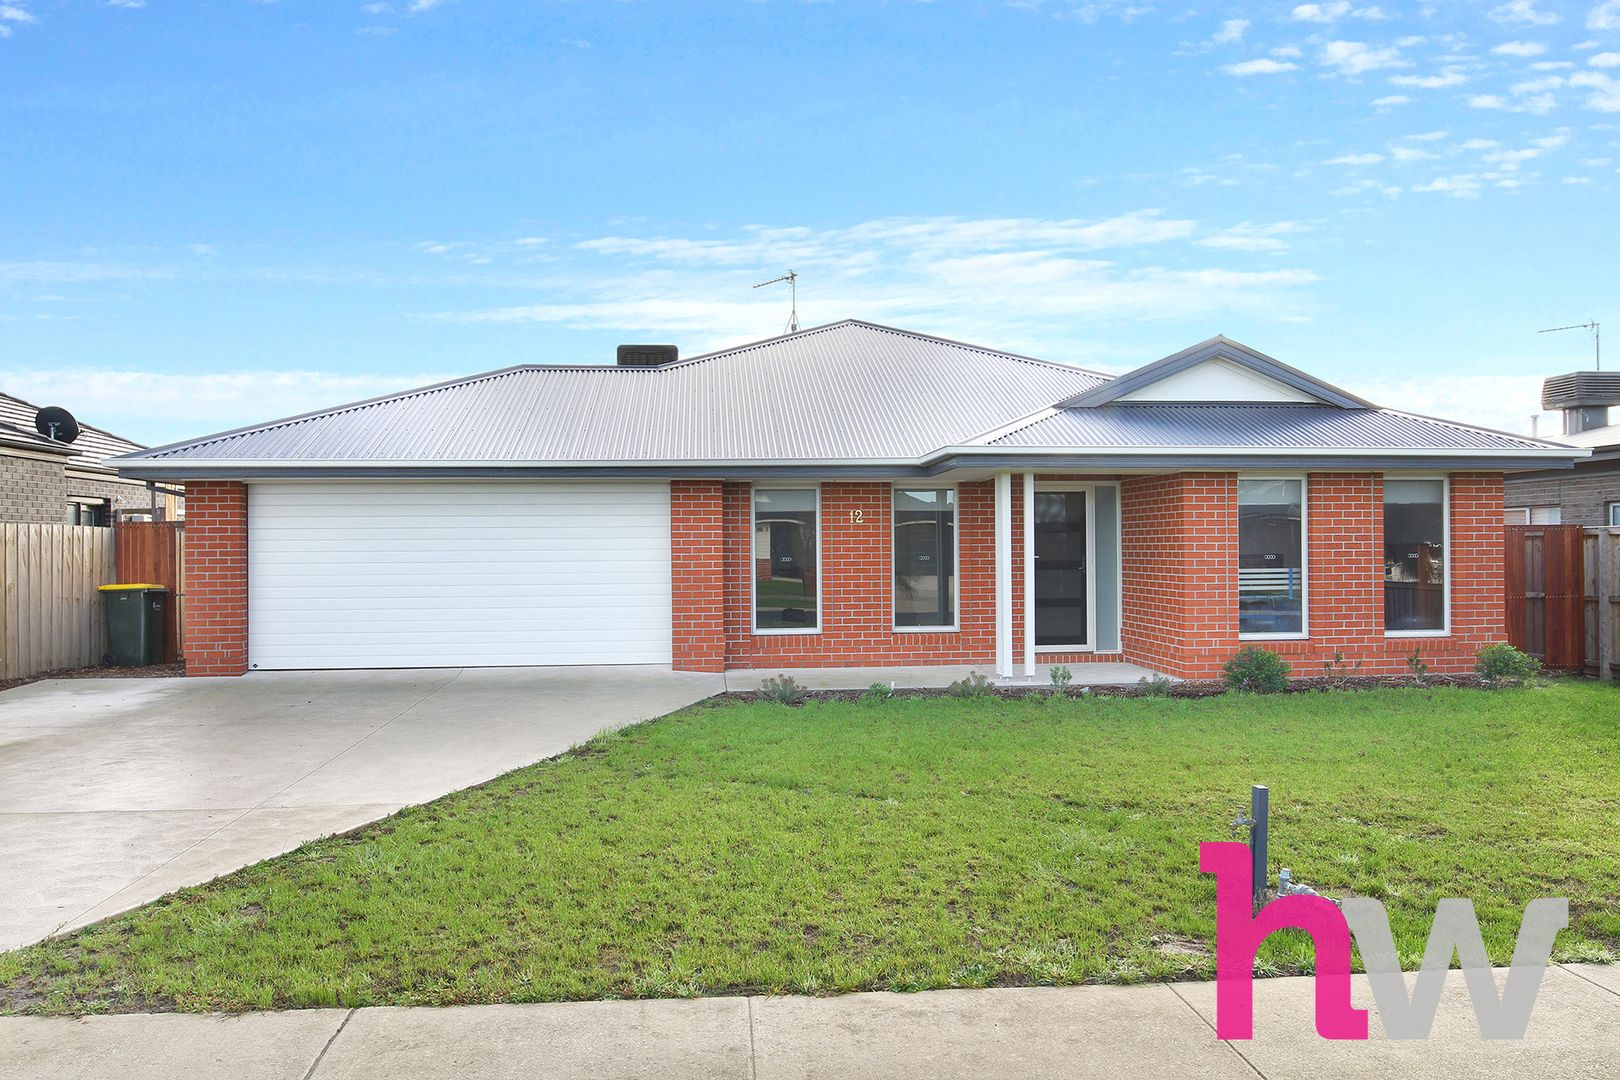 12 Glenmore Street, Winchelsea VIC 3241, Image 0